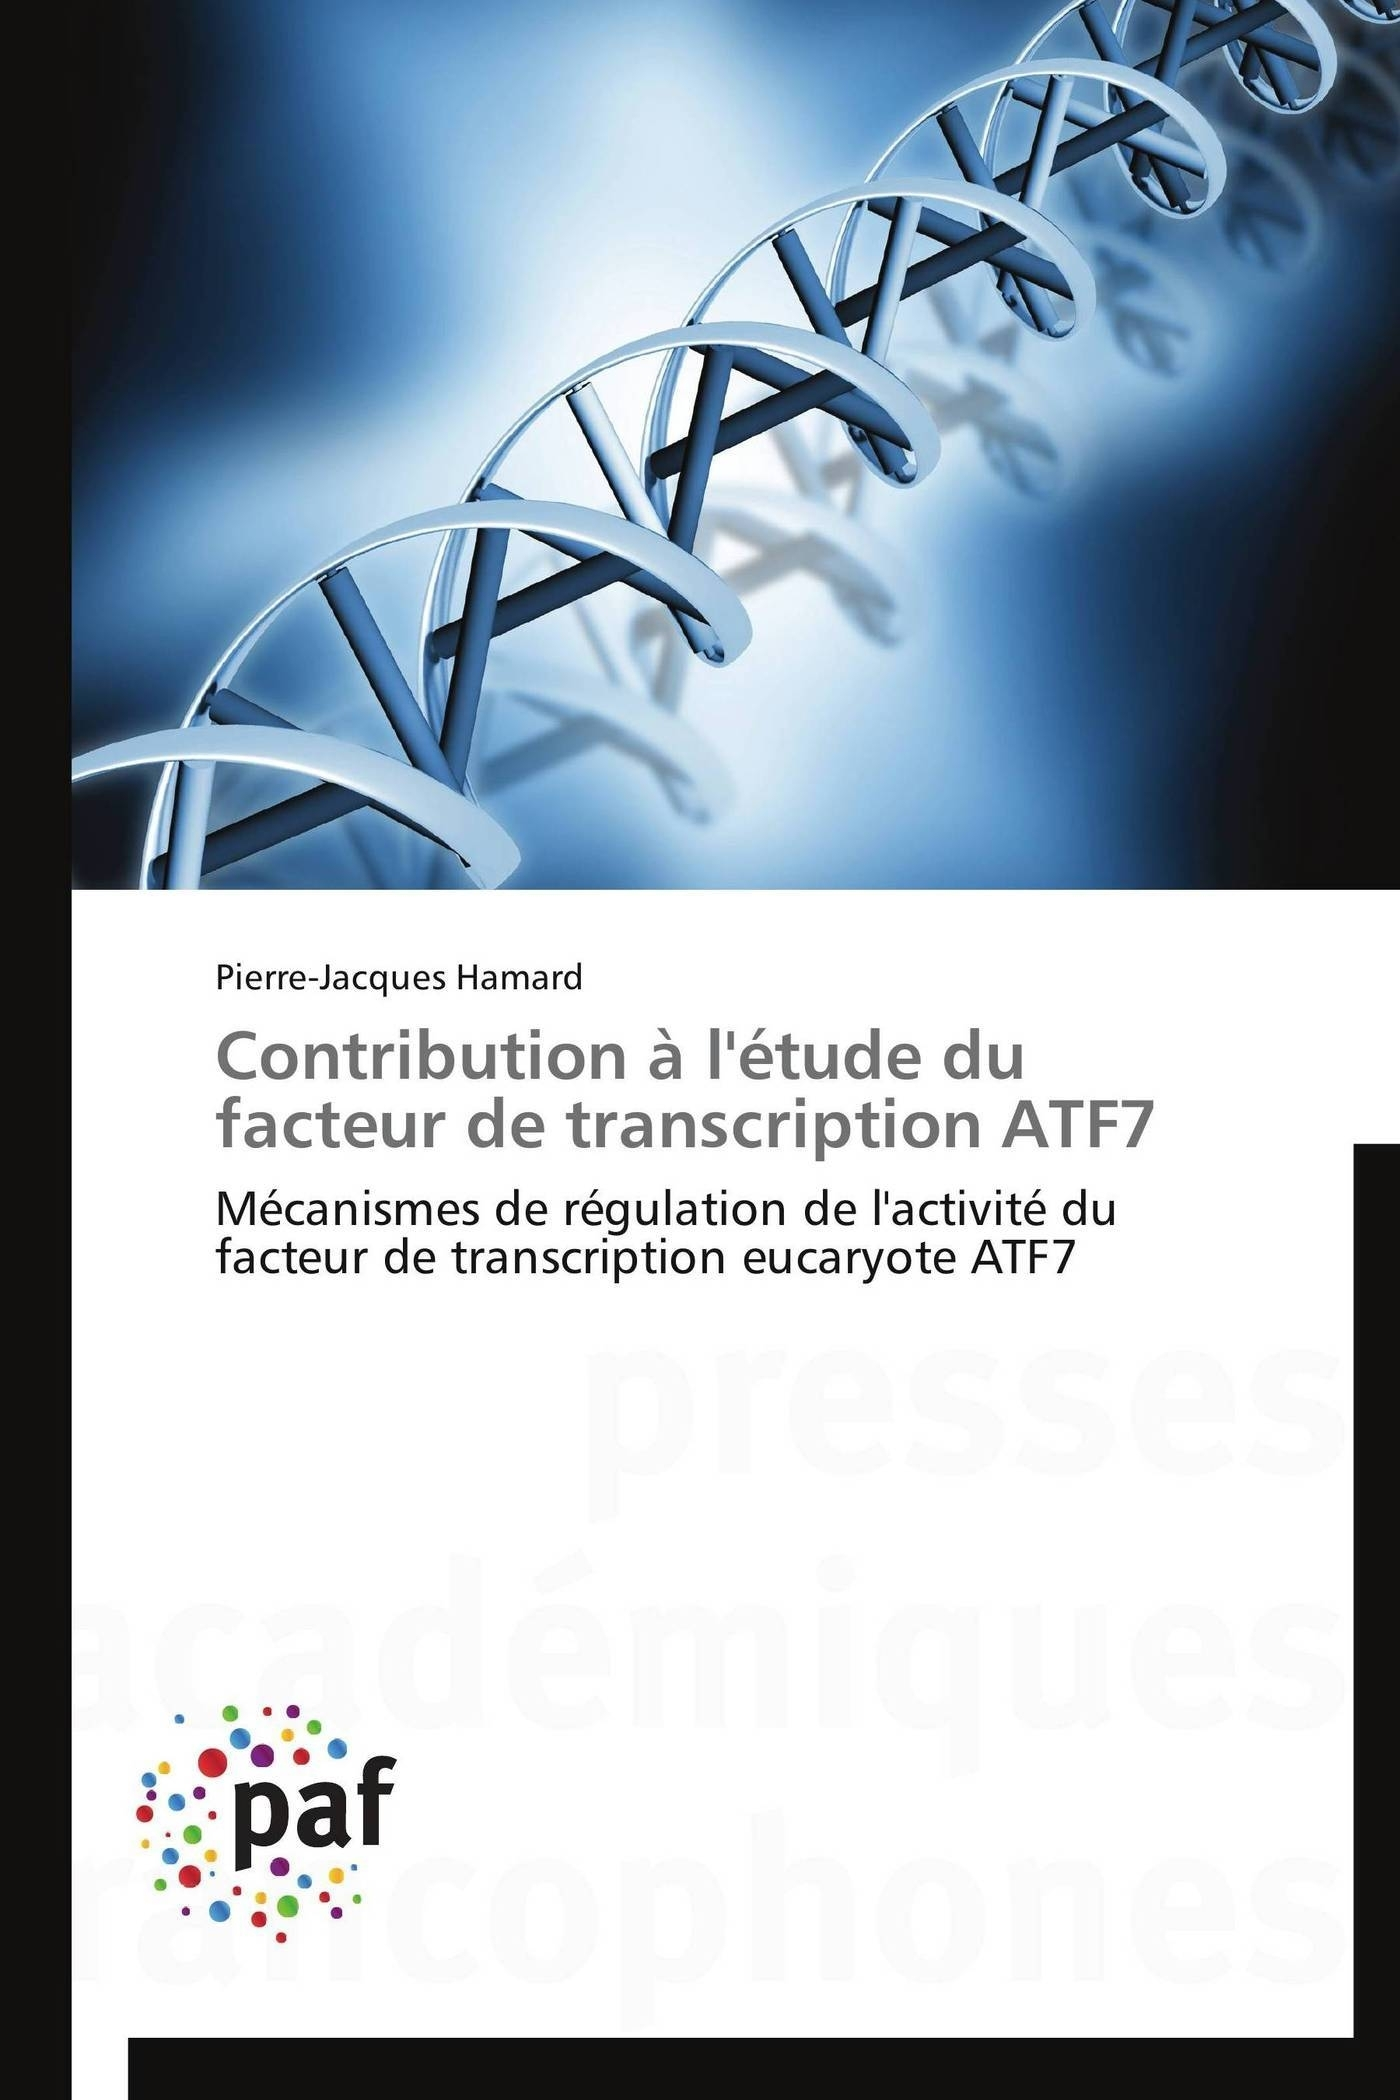 CONTRIBUTION A L'ETUDE DU FACTEUR DE TRANSCRIPTION ATF7